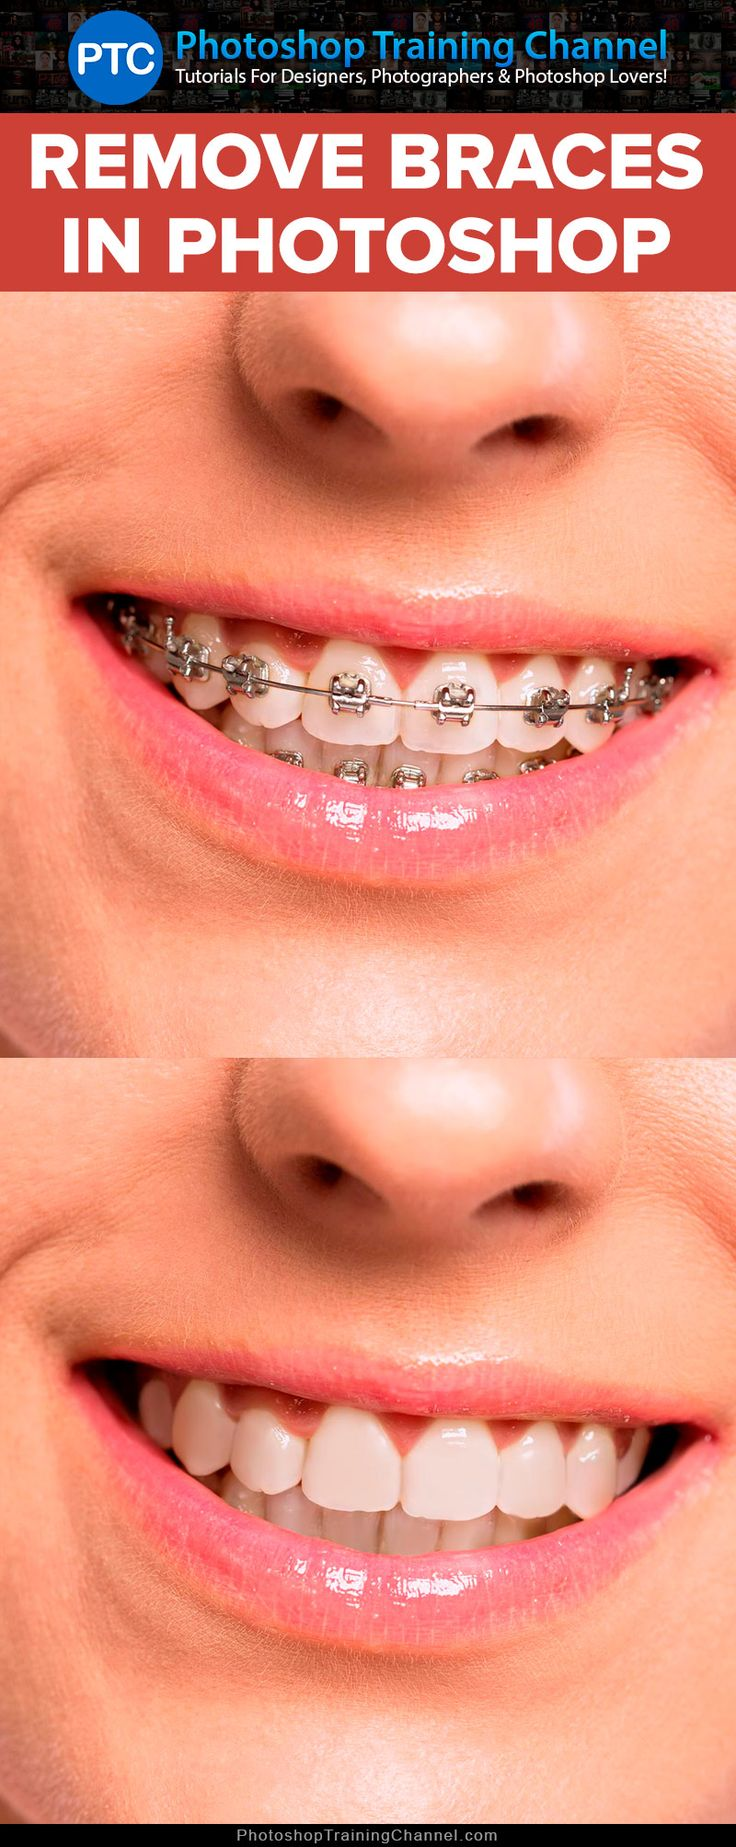 In this tutorial, you'll learn how to remove braces with Photoshop.